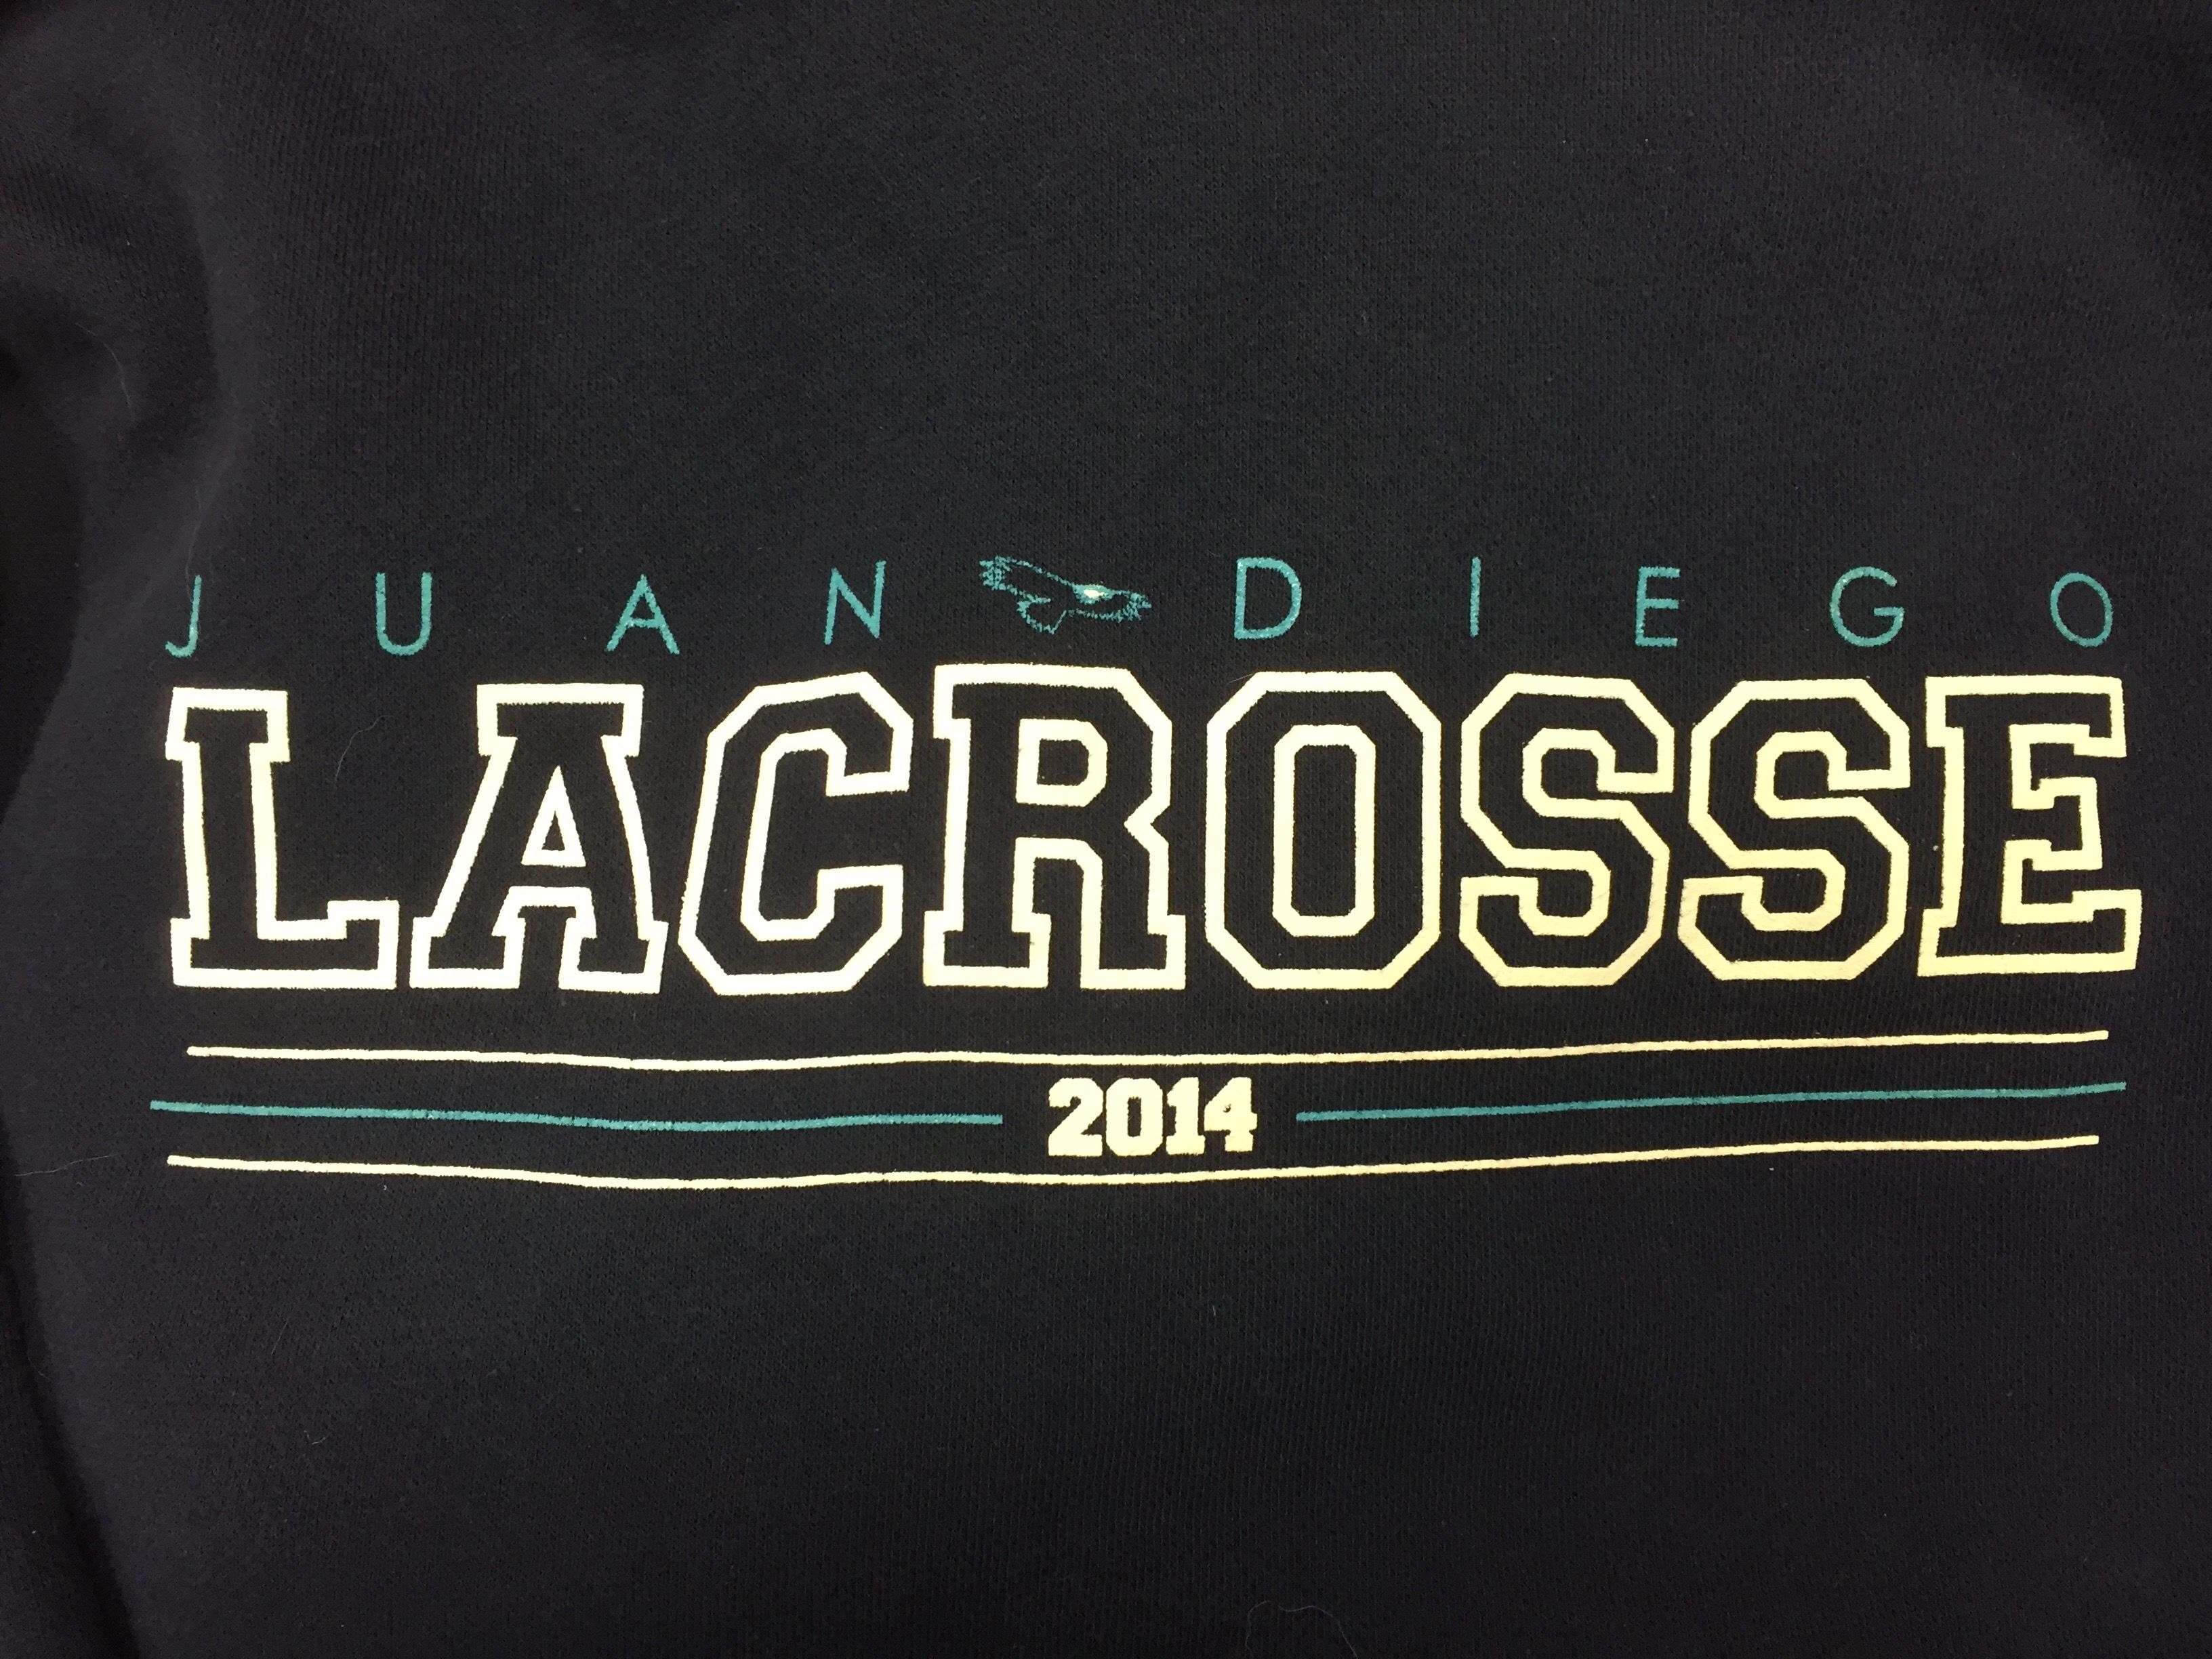 Shirt hoodie design - Lacrosse T Shirt Jersey And Hoodie Design Idea Perfect For High School